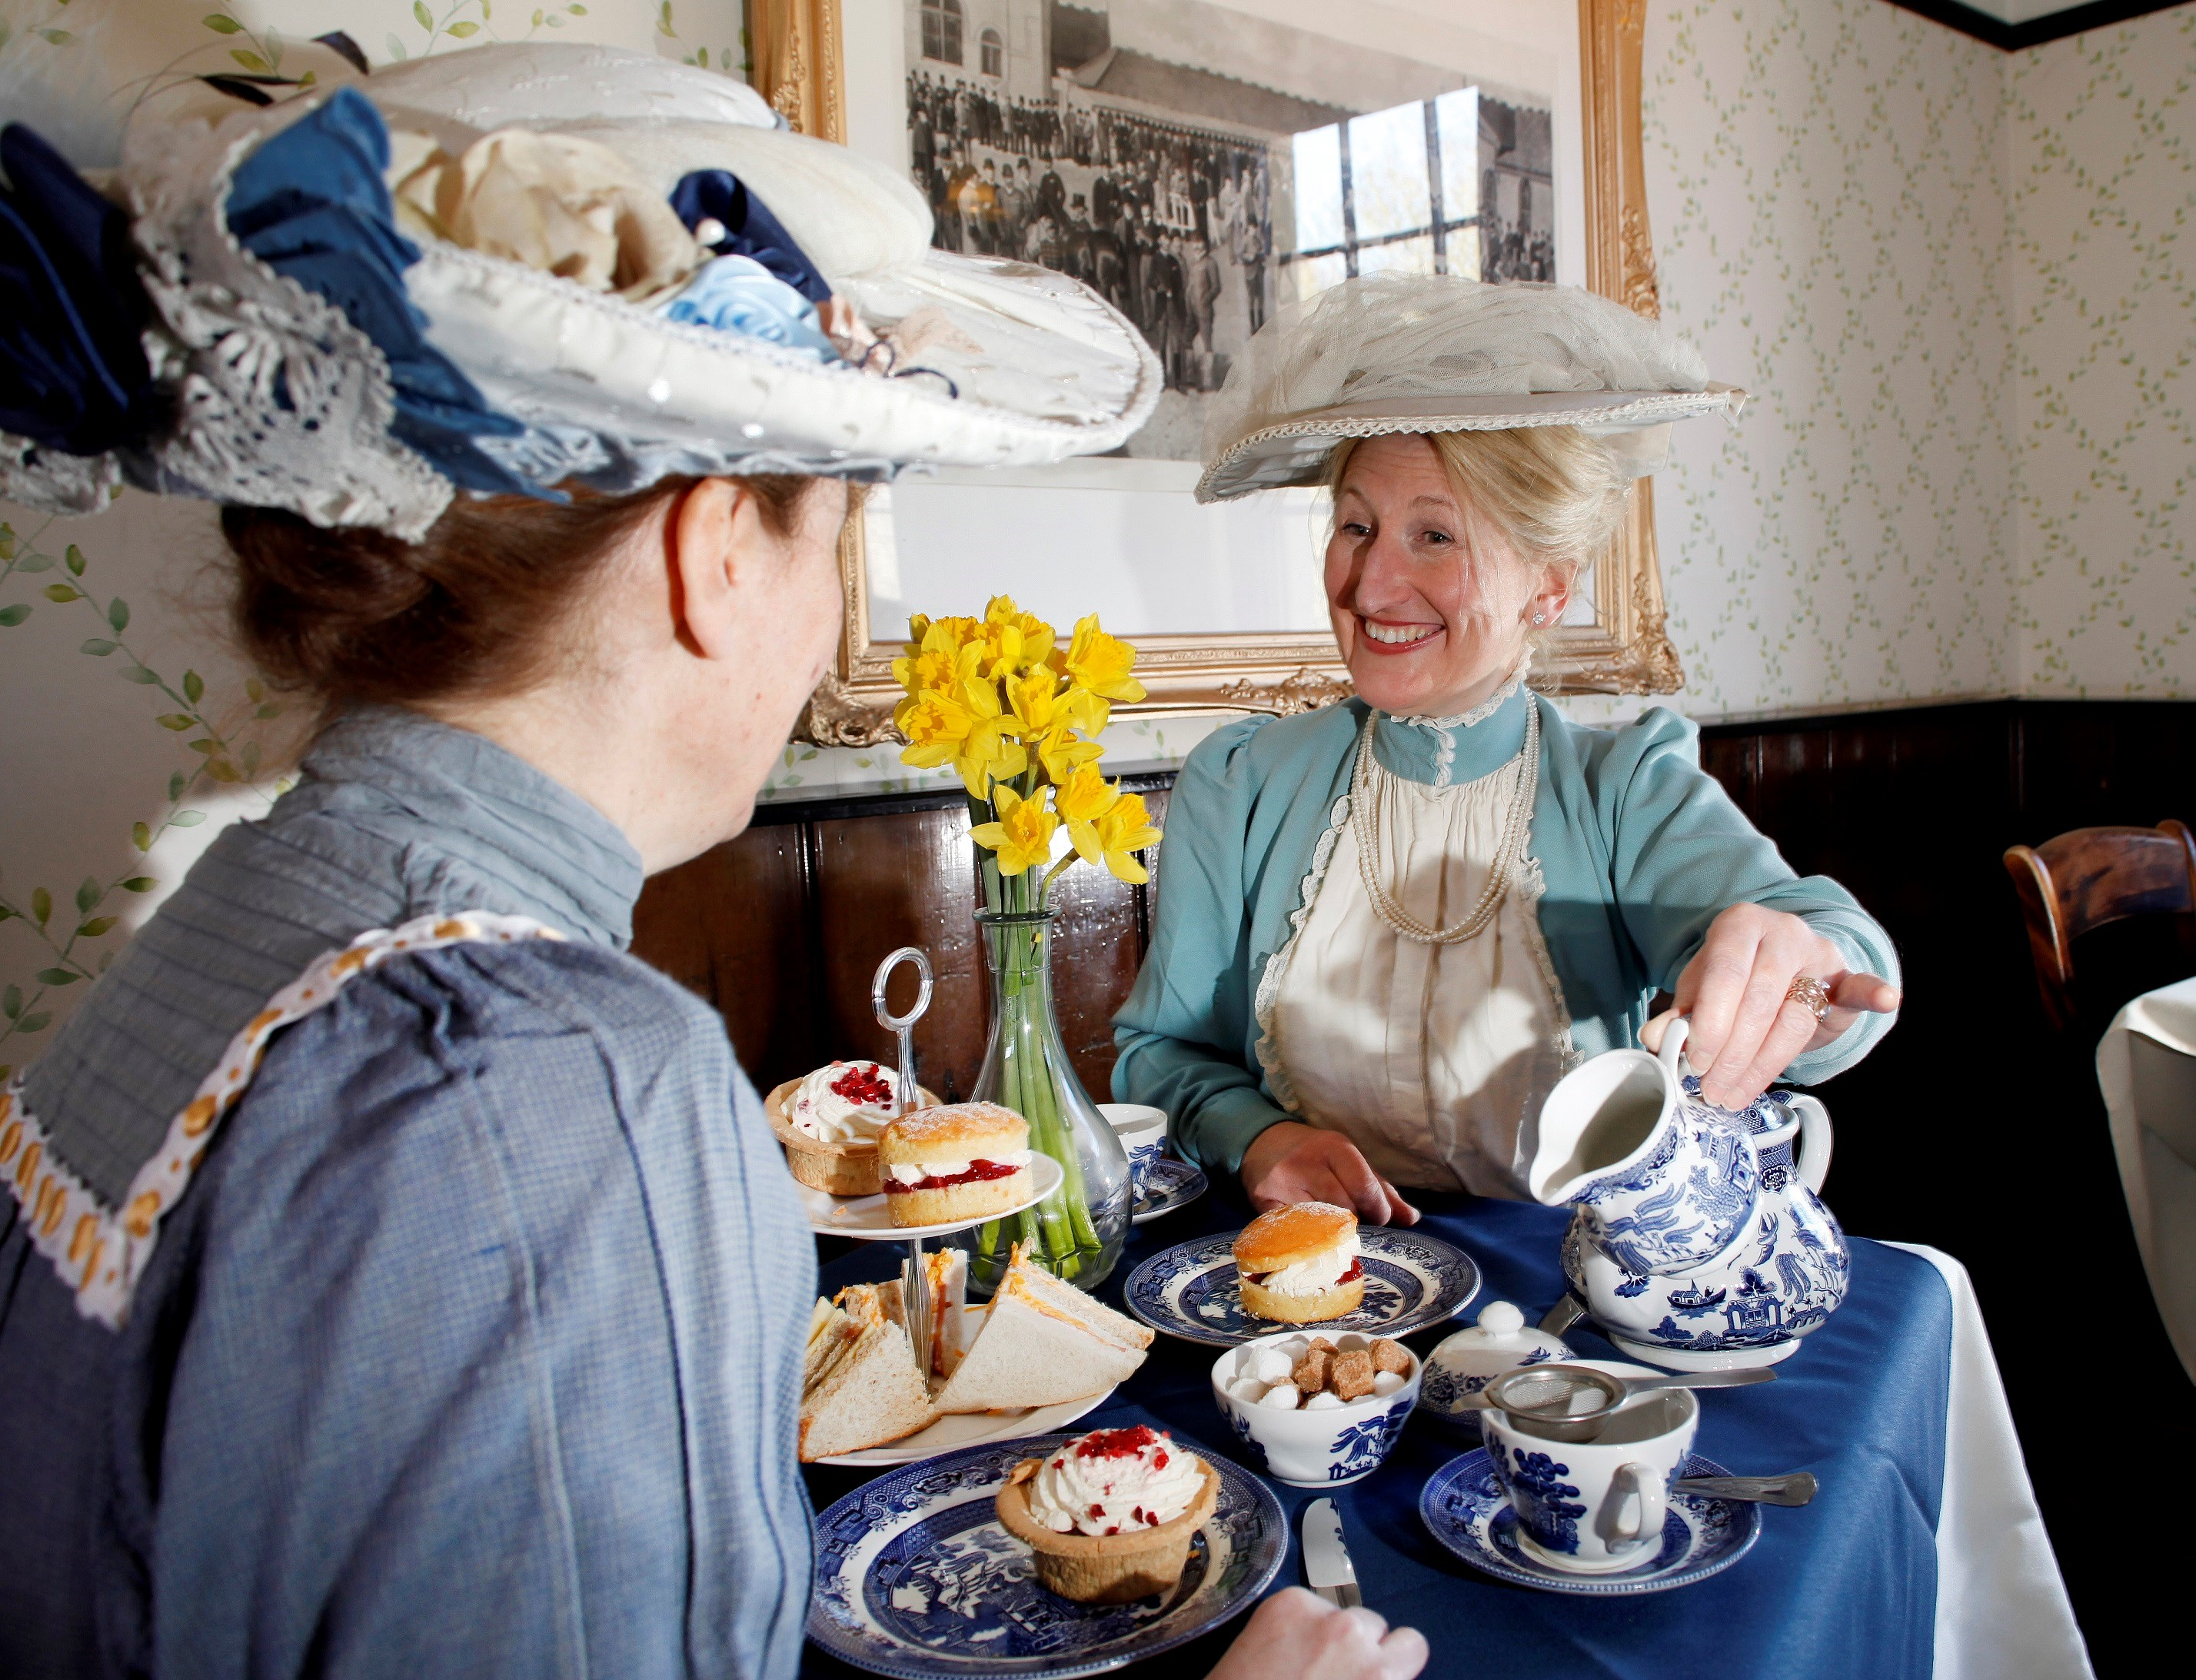 Free admission for mothers to Ironbridge Gorge Museums on Mother's Day